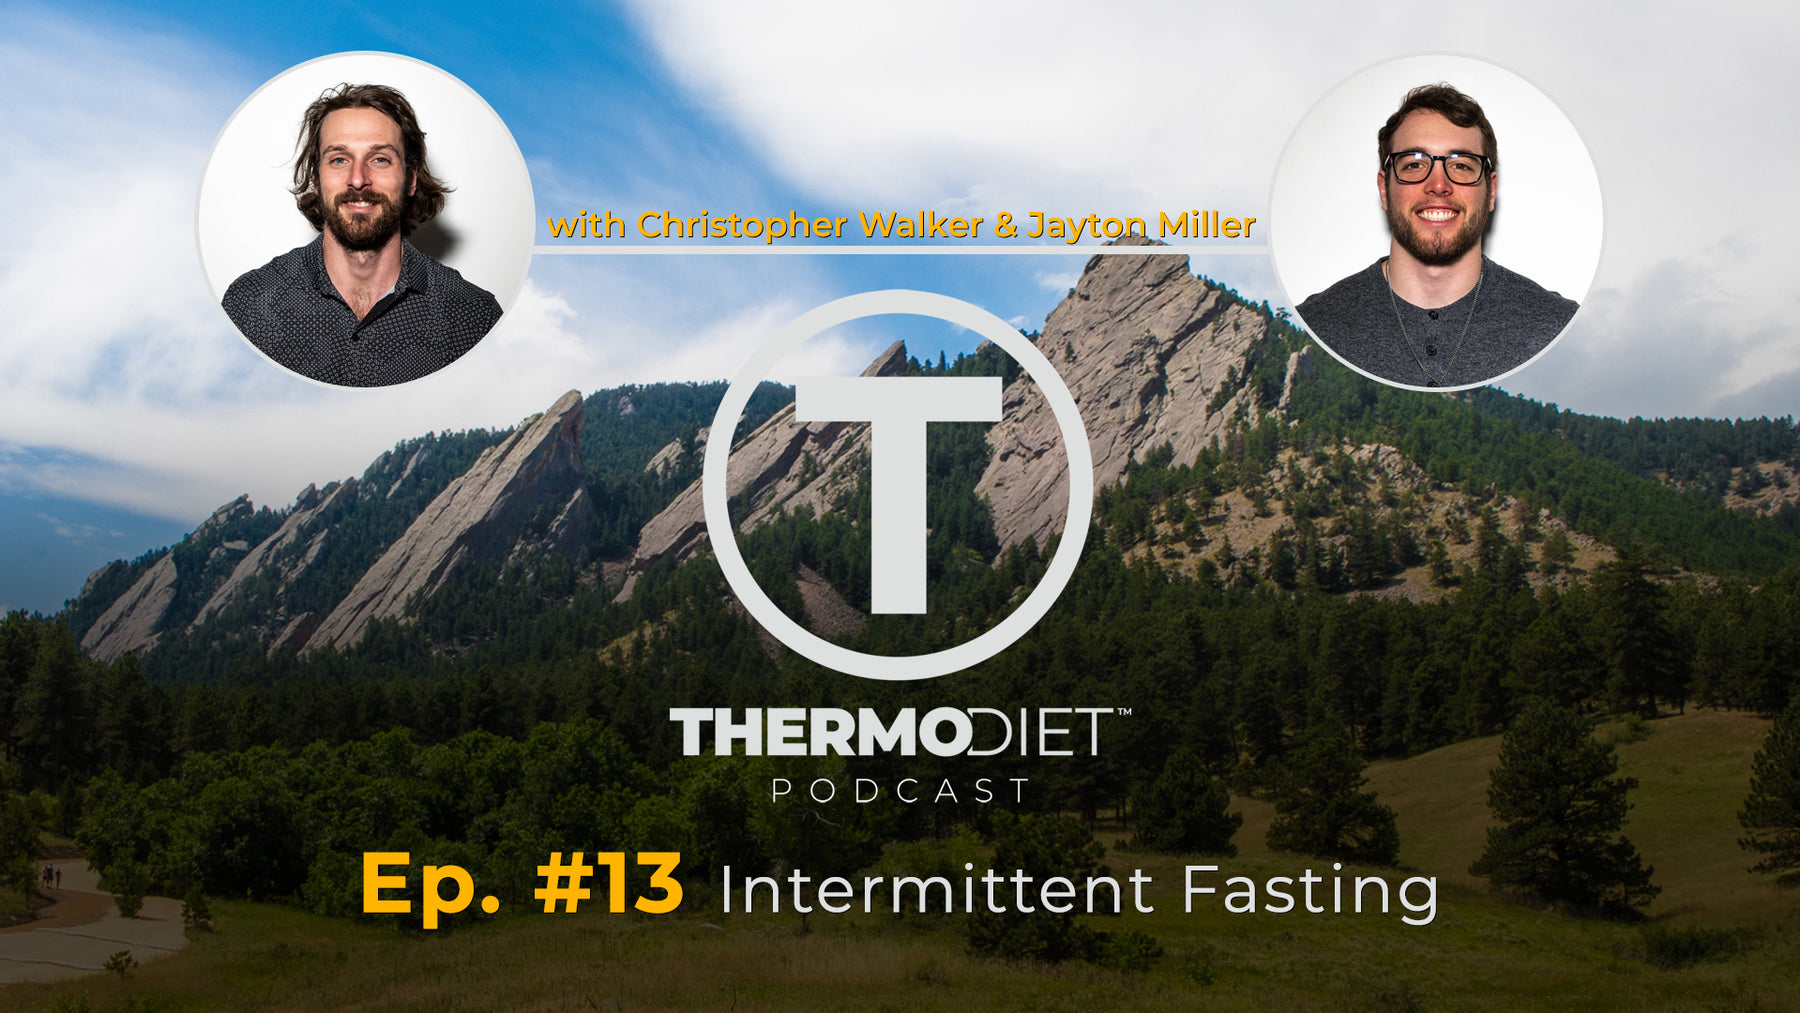 The Thermo Diet Podcast Episode 13 - Fasting